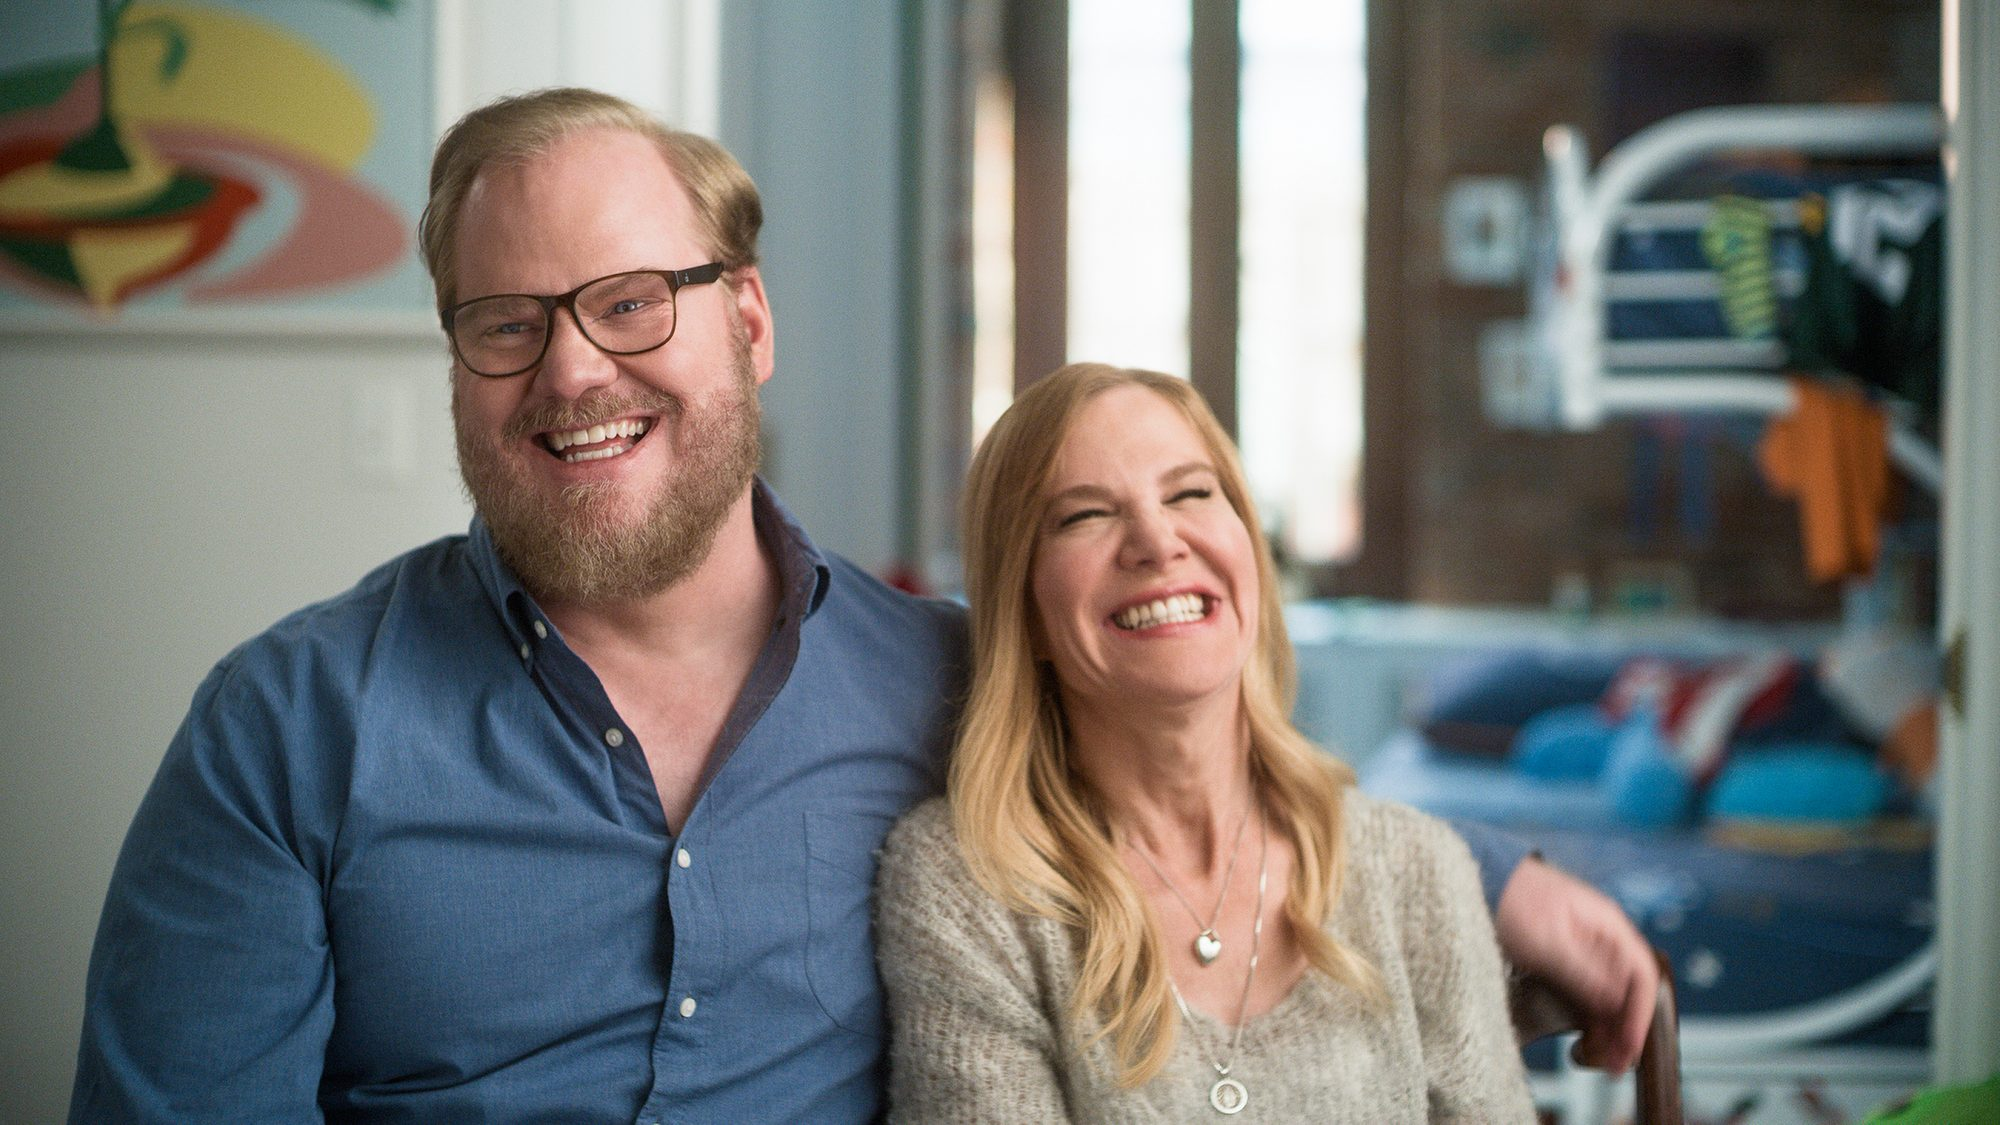 Jim Gaffigan and Wife Jeannie Reveal How Humor Helped Them